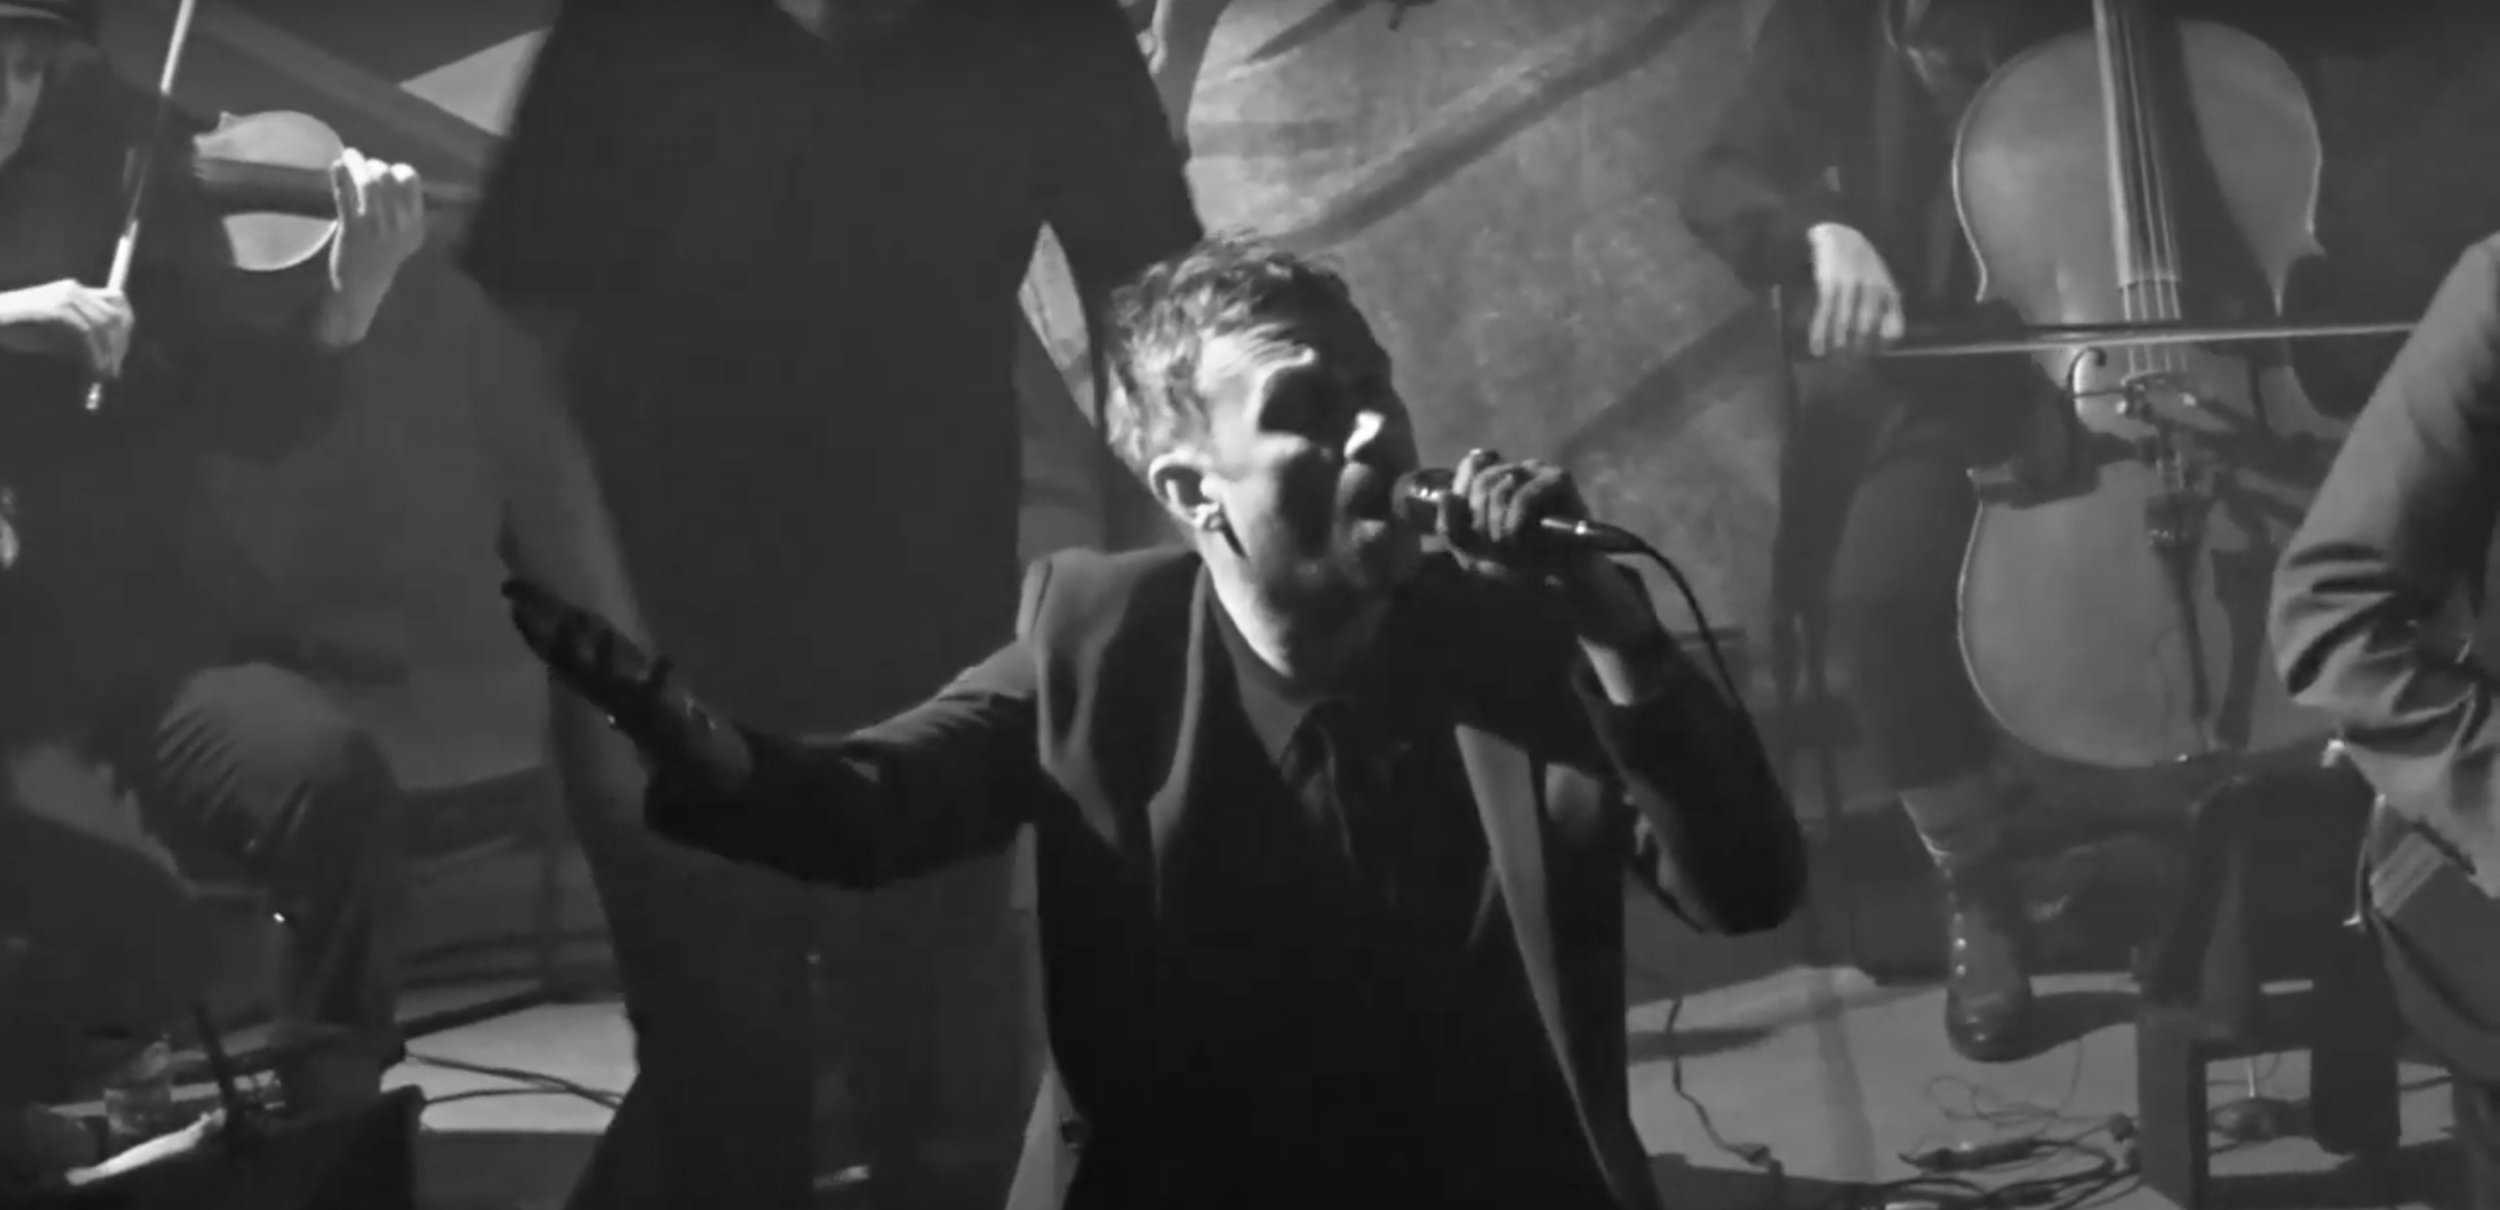 The Good, The Bad & The QueenEartH [04/12/18] - The Good, The Bad & The Queen, led by the poetic musings of Damon Albarn transform EartH Hackney into Merrie Land for three nights. Here's our verdict of the triumphant opening show.